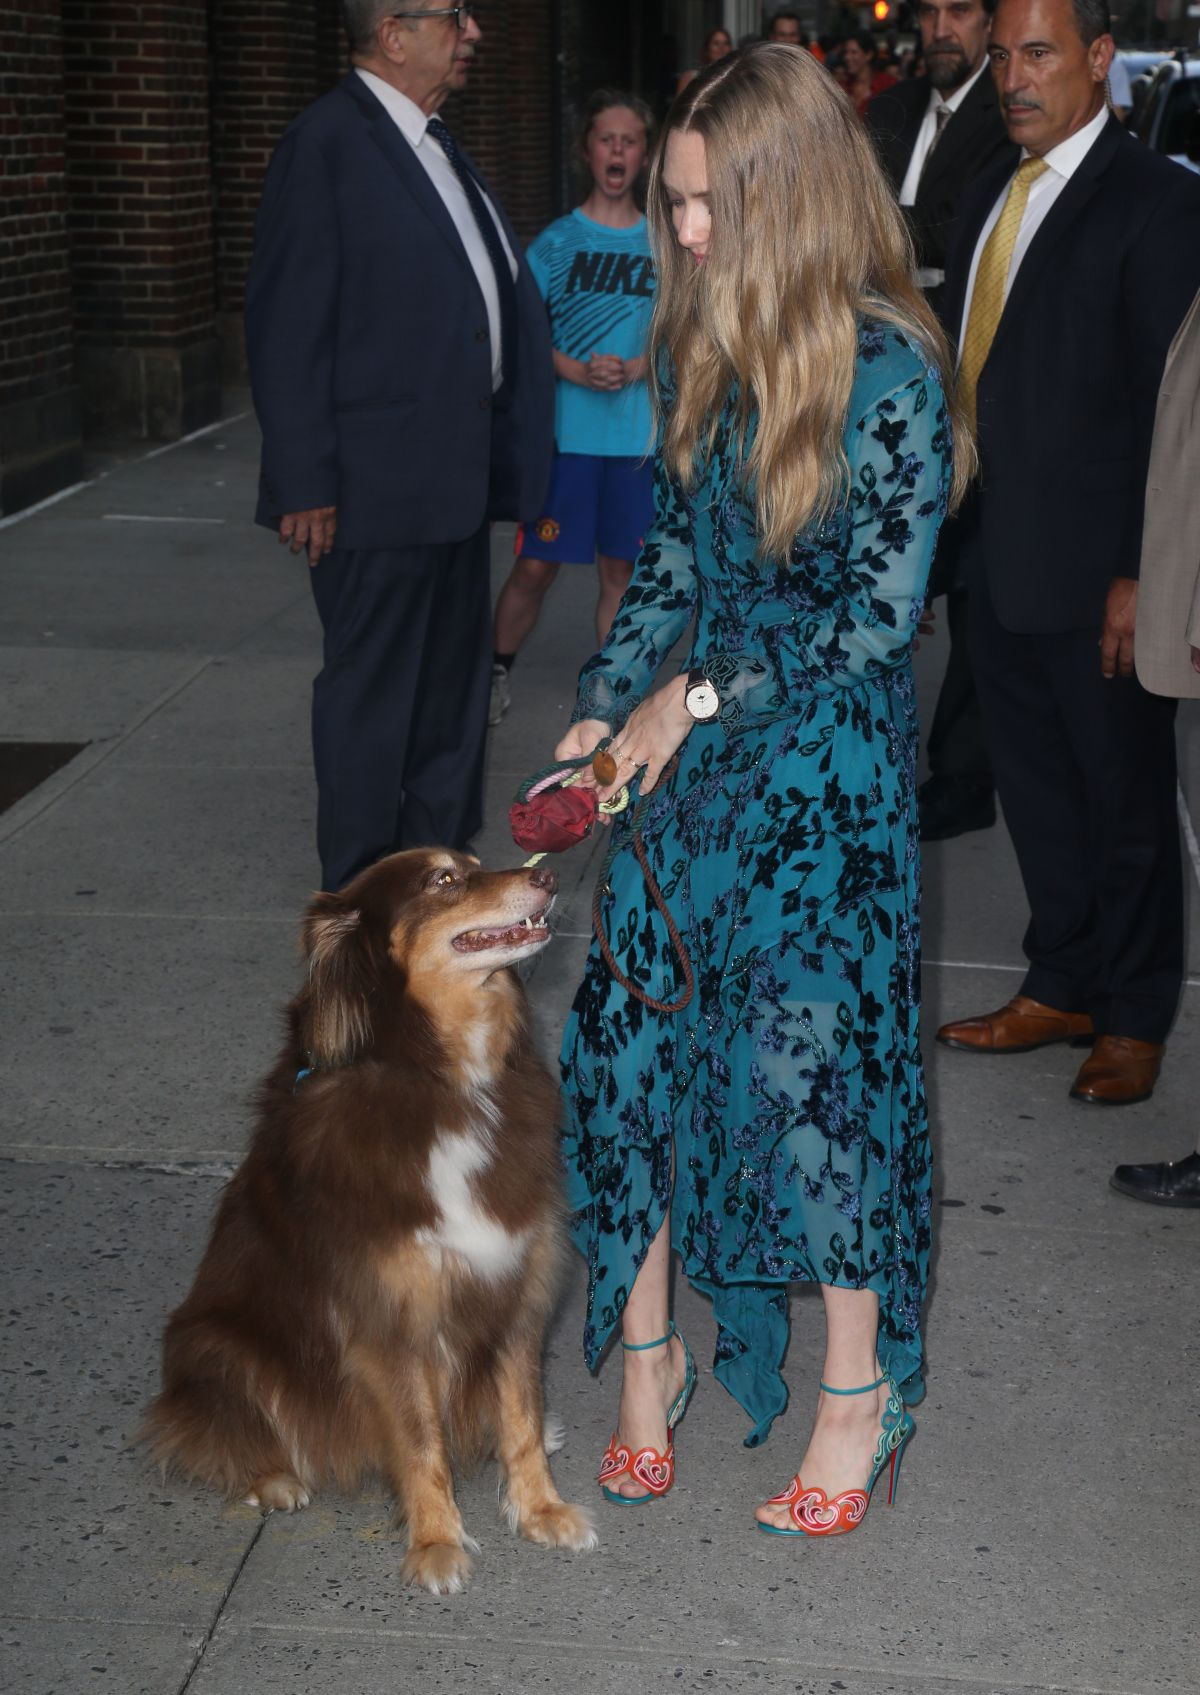 AMANDA SEYFRIED Arrives at Late Show with Stephen Colbert in